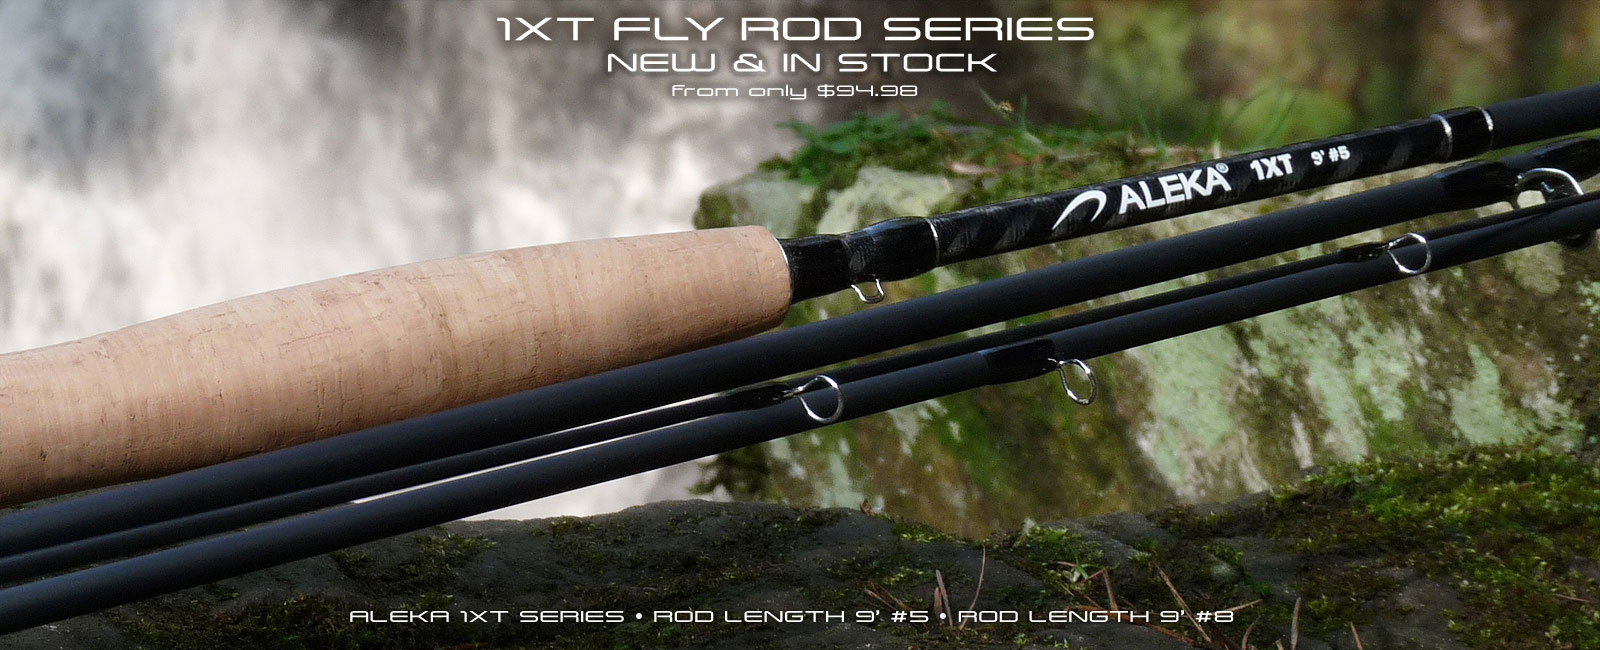 ALEKA 1XT Fly Rod Series